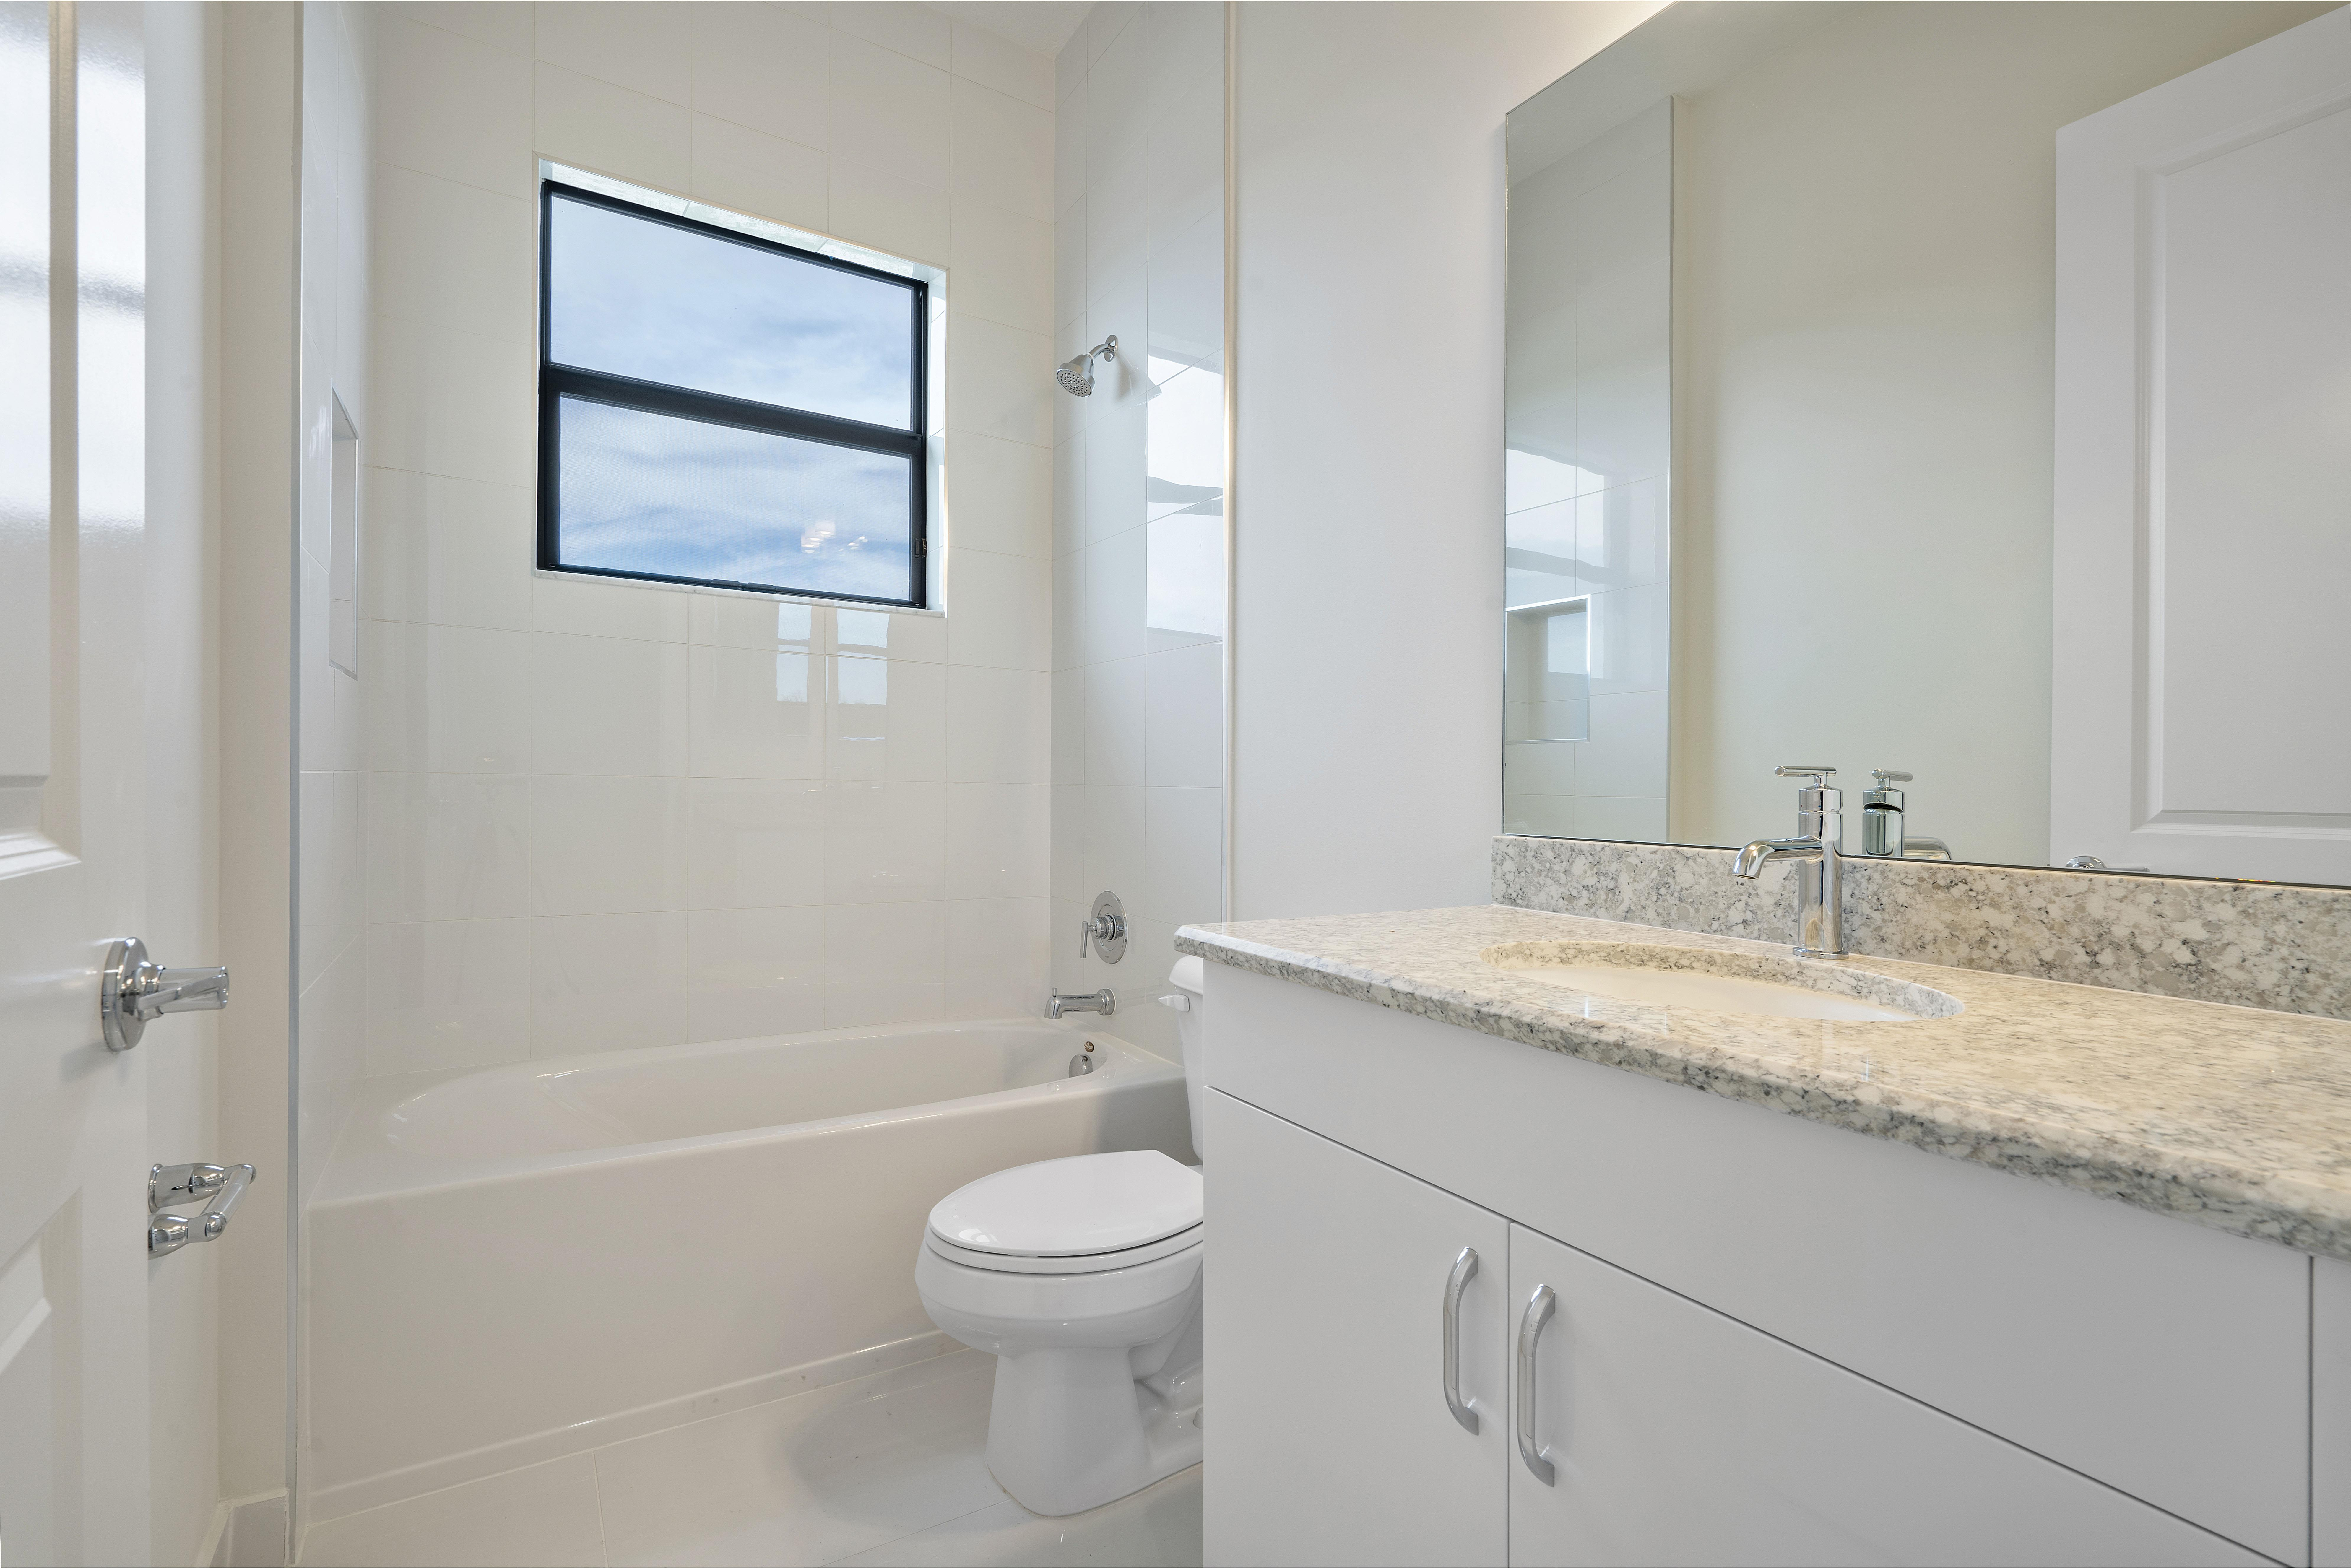 Bathroom featured in the Lago Grand By Akel Homes in Palm Beach County, FL